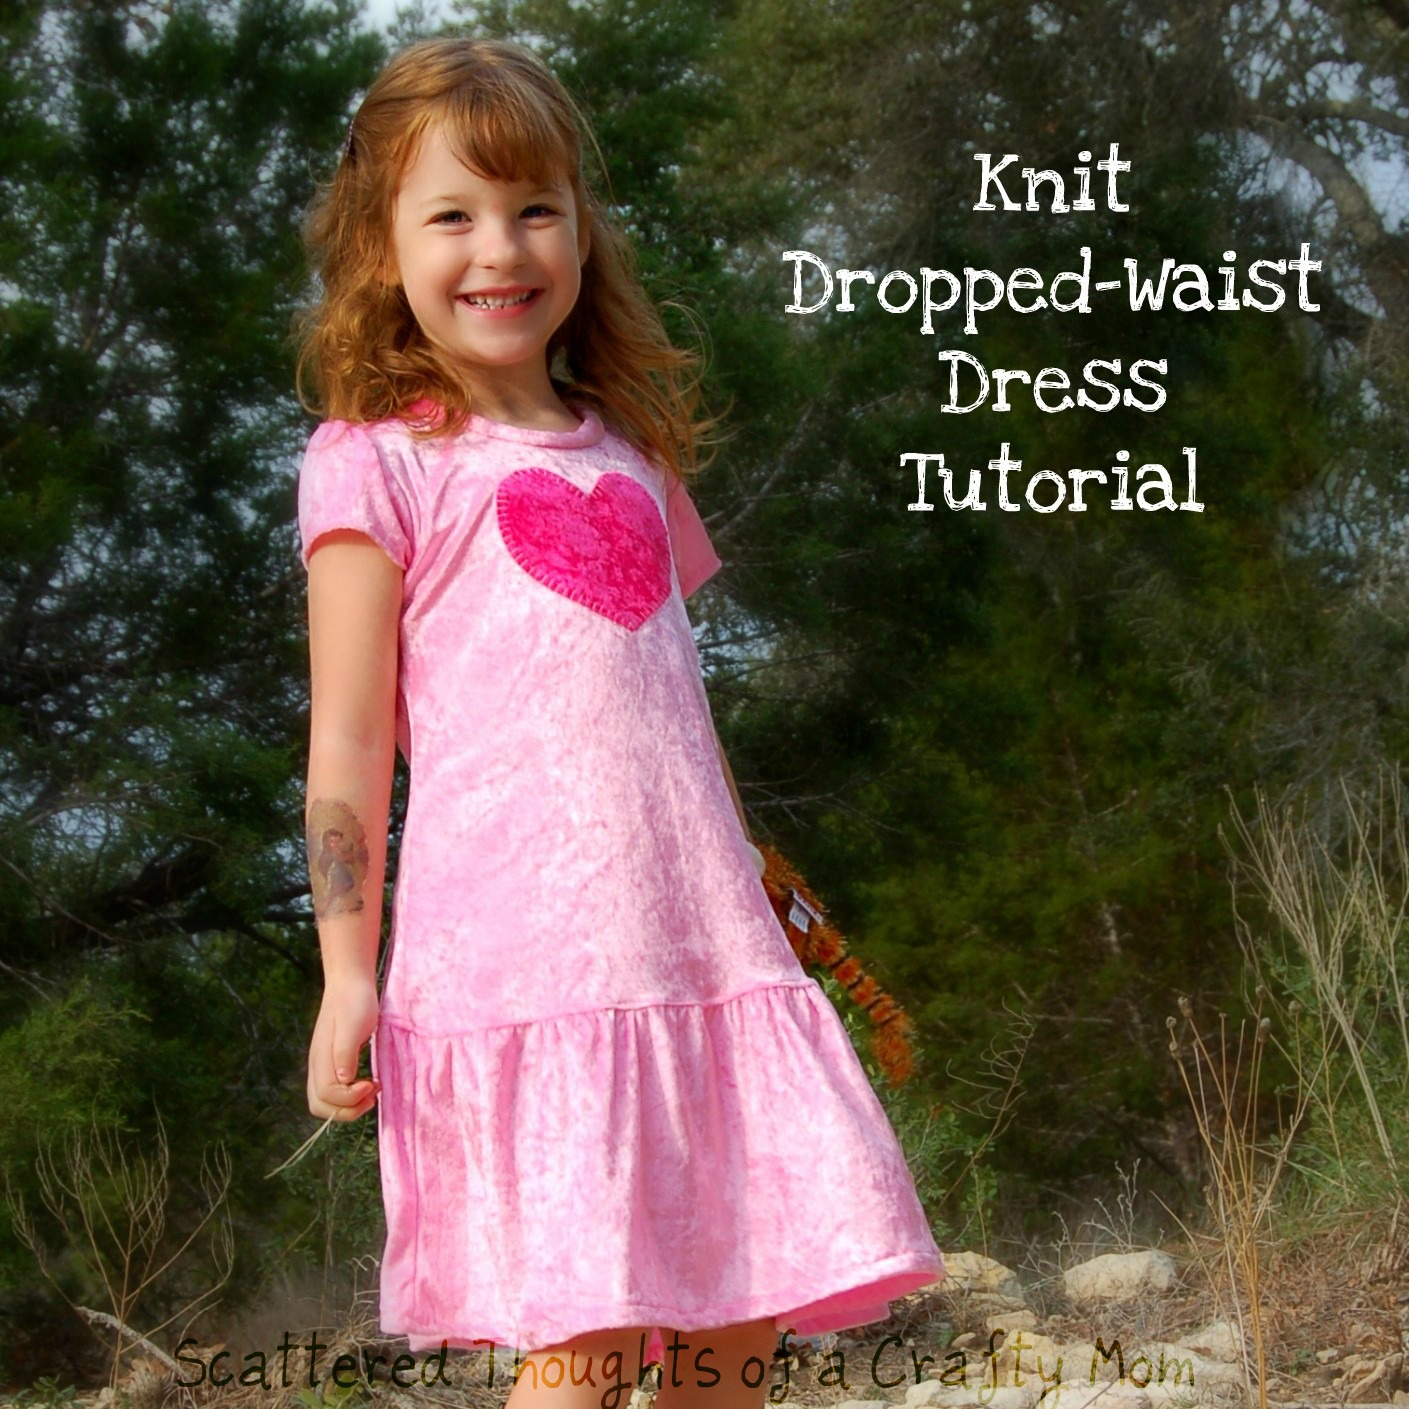 Dropped-Waist Knit Dress Tutorial with Pattern - Scattered Thoughts ...